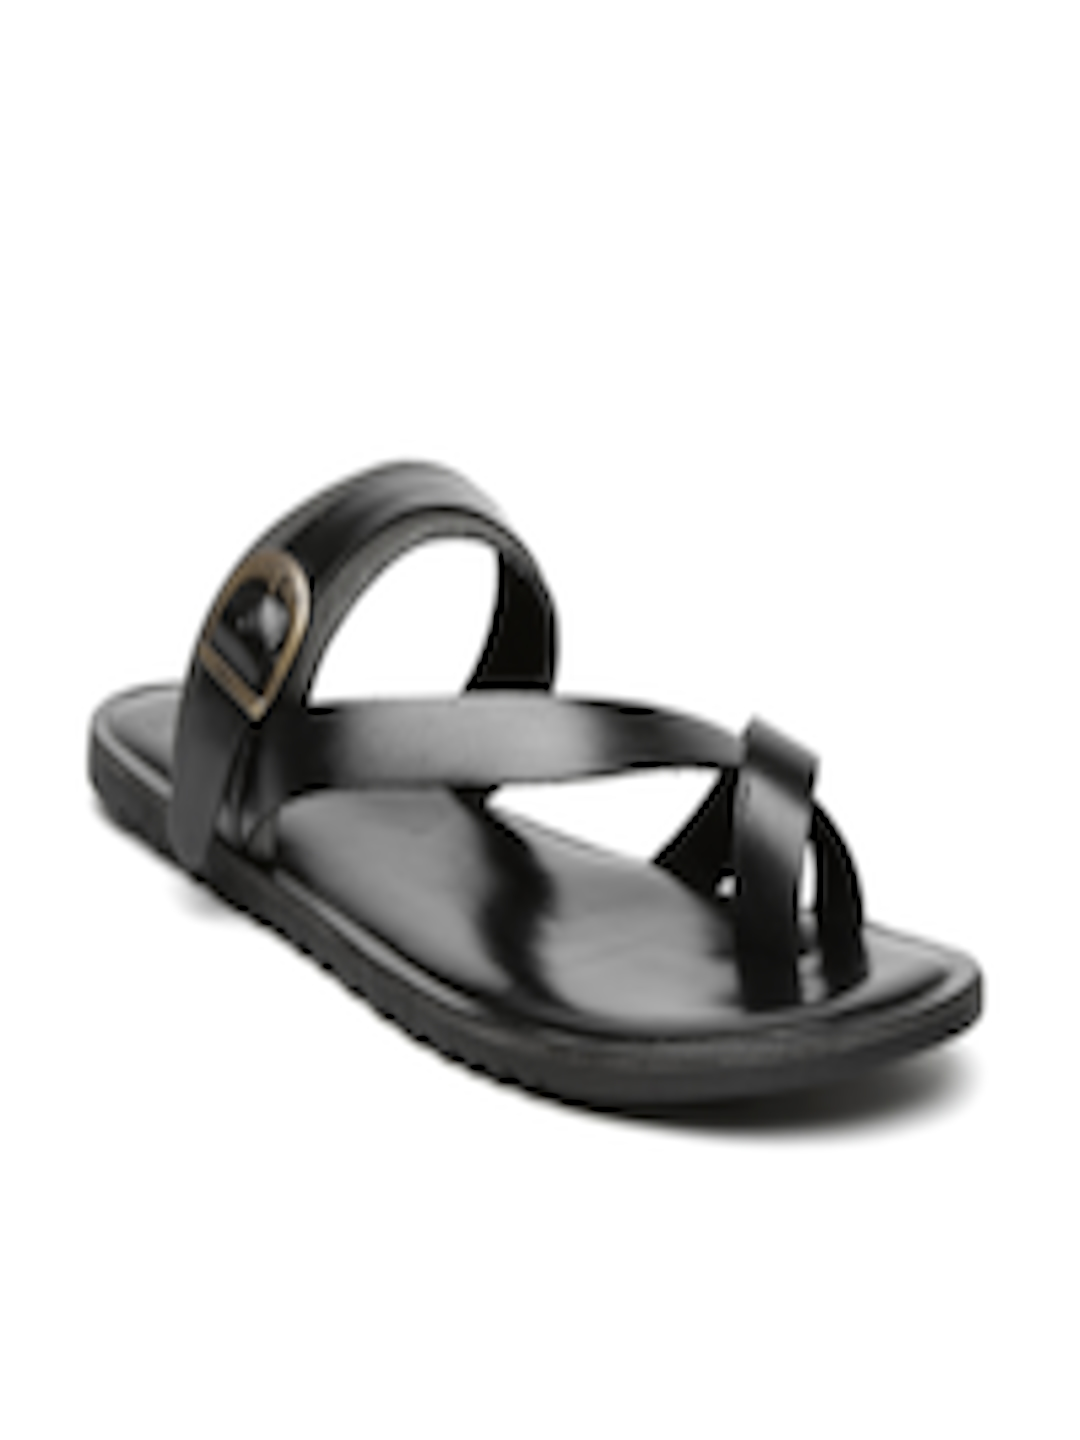 124a95d8b25f Buy Van Heusen Men Black Leather Sandals - Sandals for Men 1378677 | Myntra